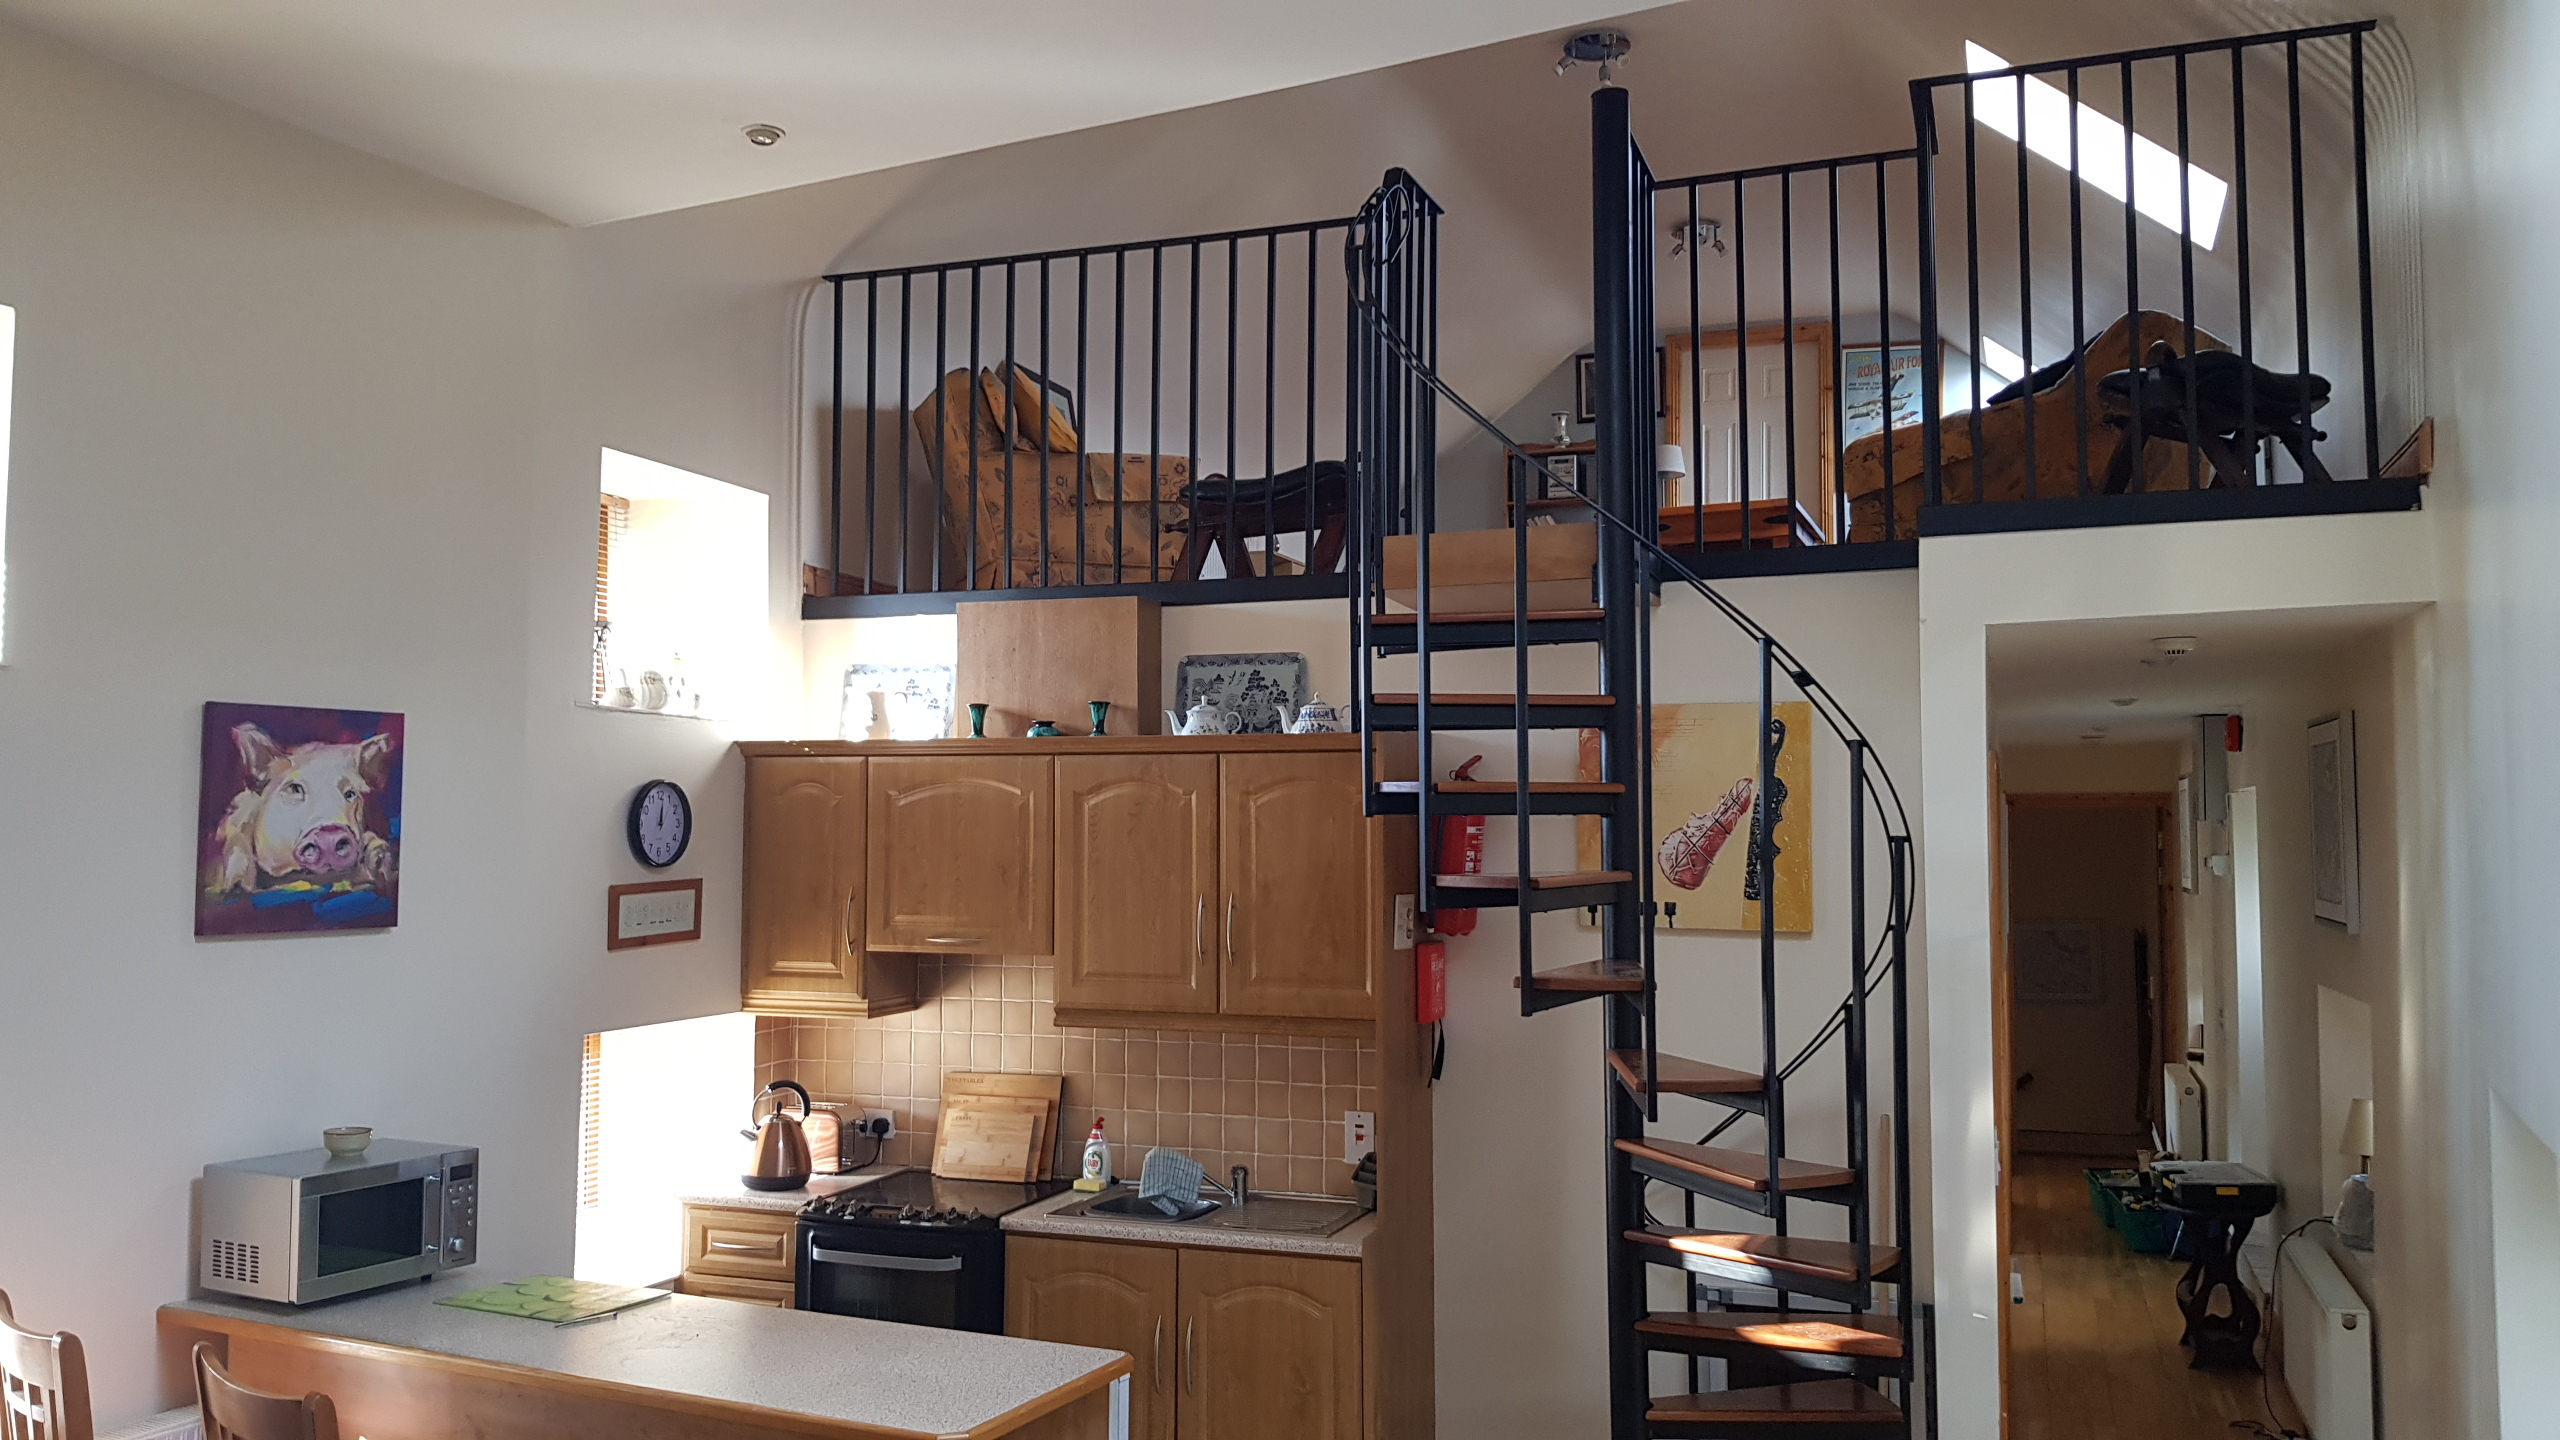 3 Bedroom Loft Apartment Apartments For Rent In Banagher Ireland